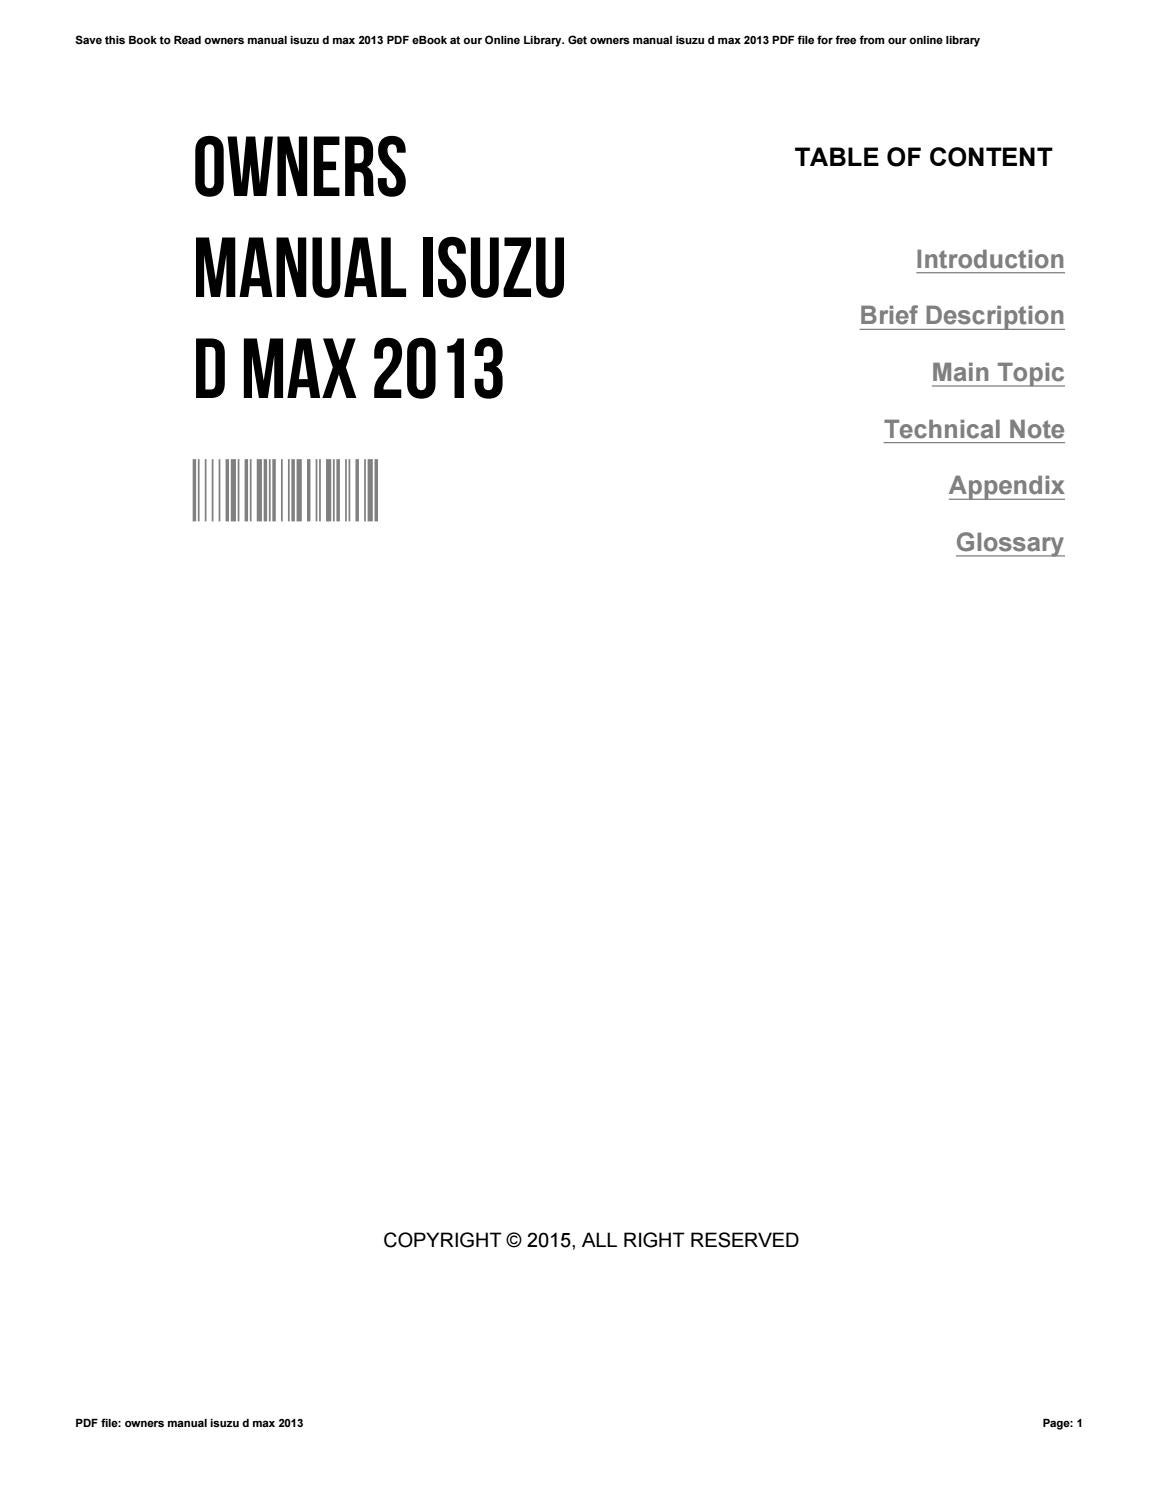 Owners Manual Isuzu D Max 2013 By Luisamorgan2384